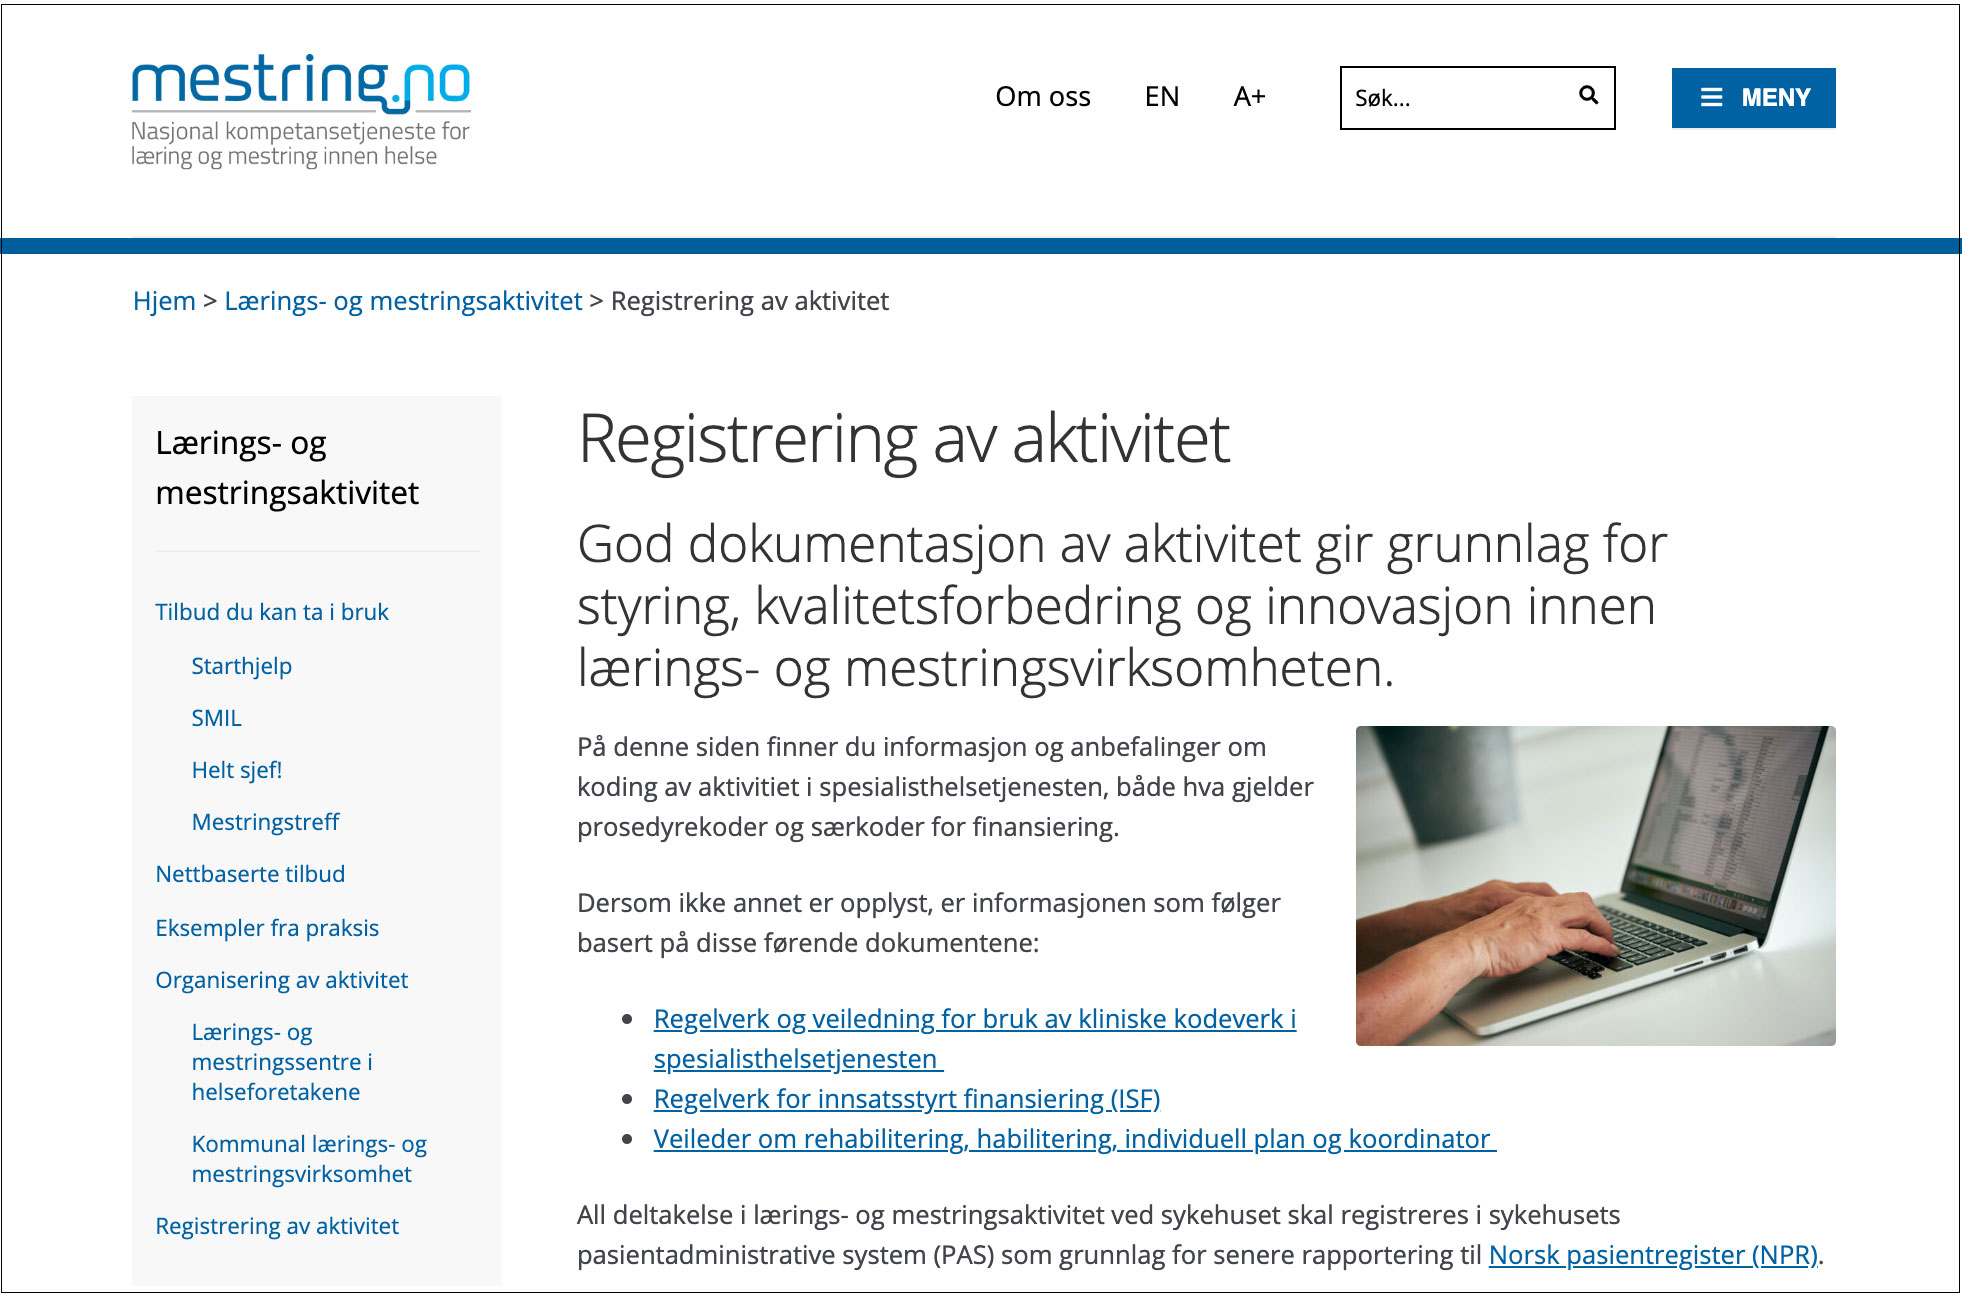 Ny side: Registrering av aktivitet